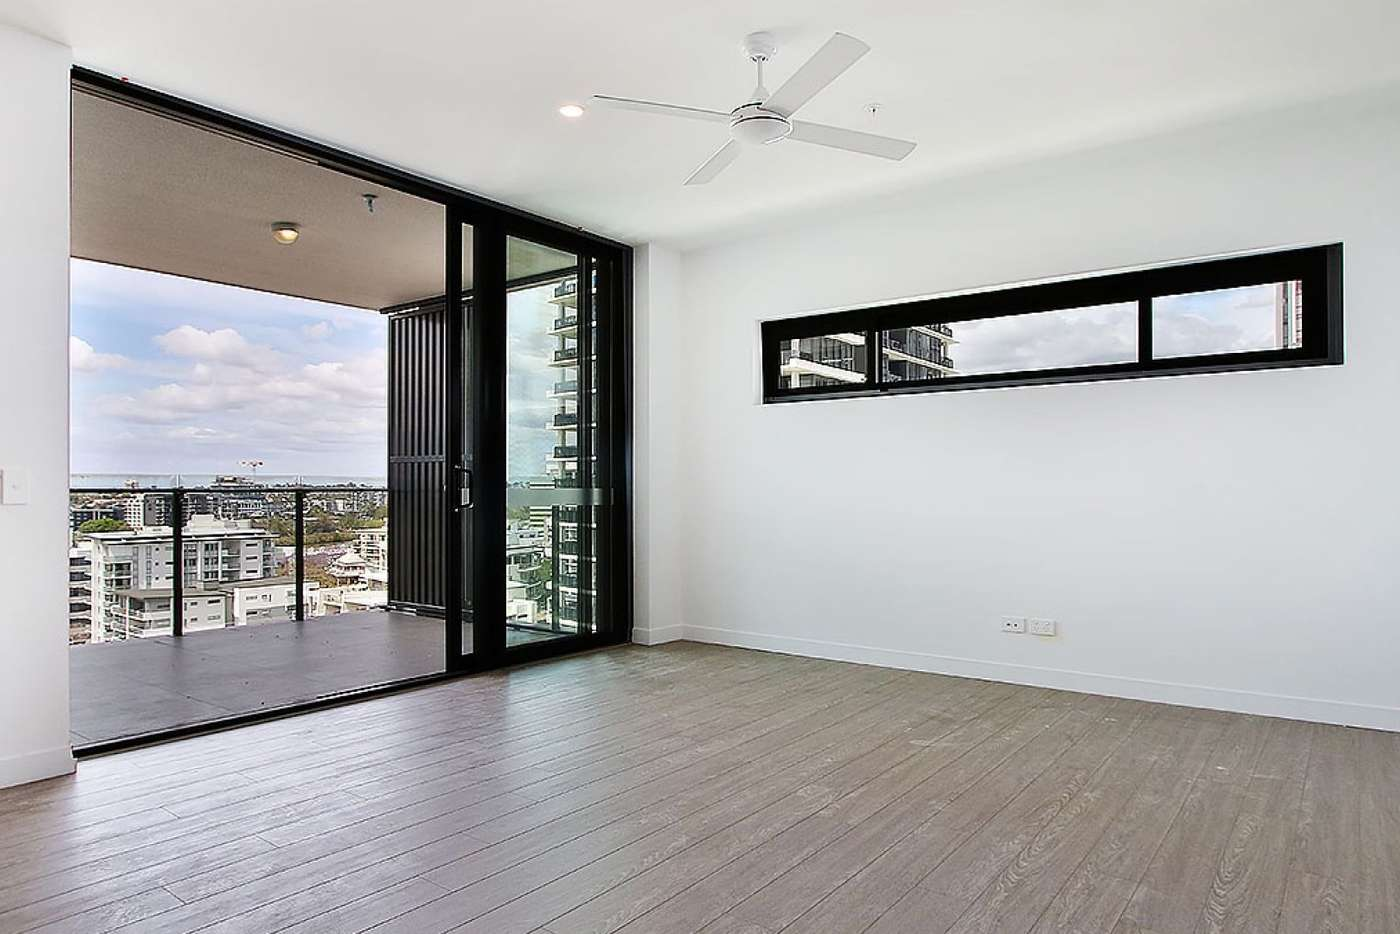 Sixth view of Homely apartment listing, ID:3917729/19 Railway Terrace, Milton QLD 4064